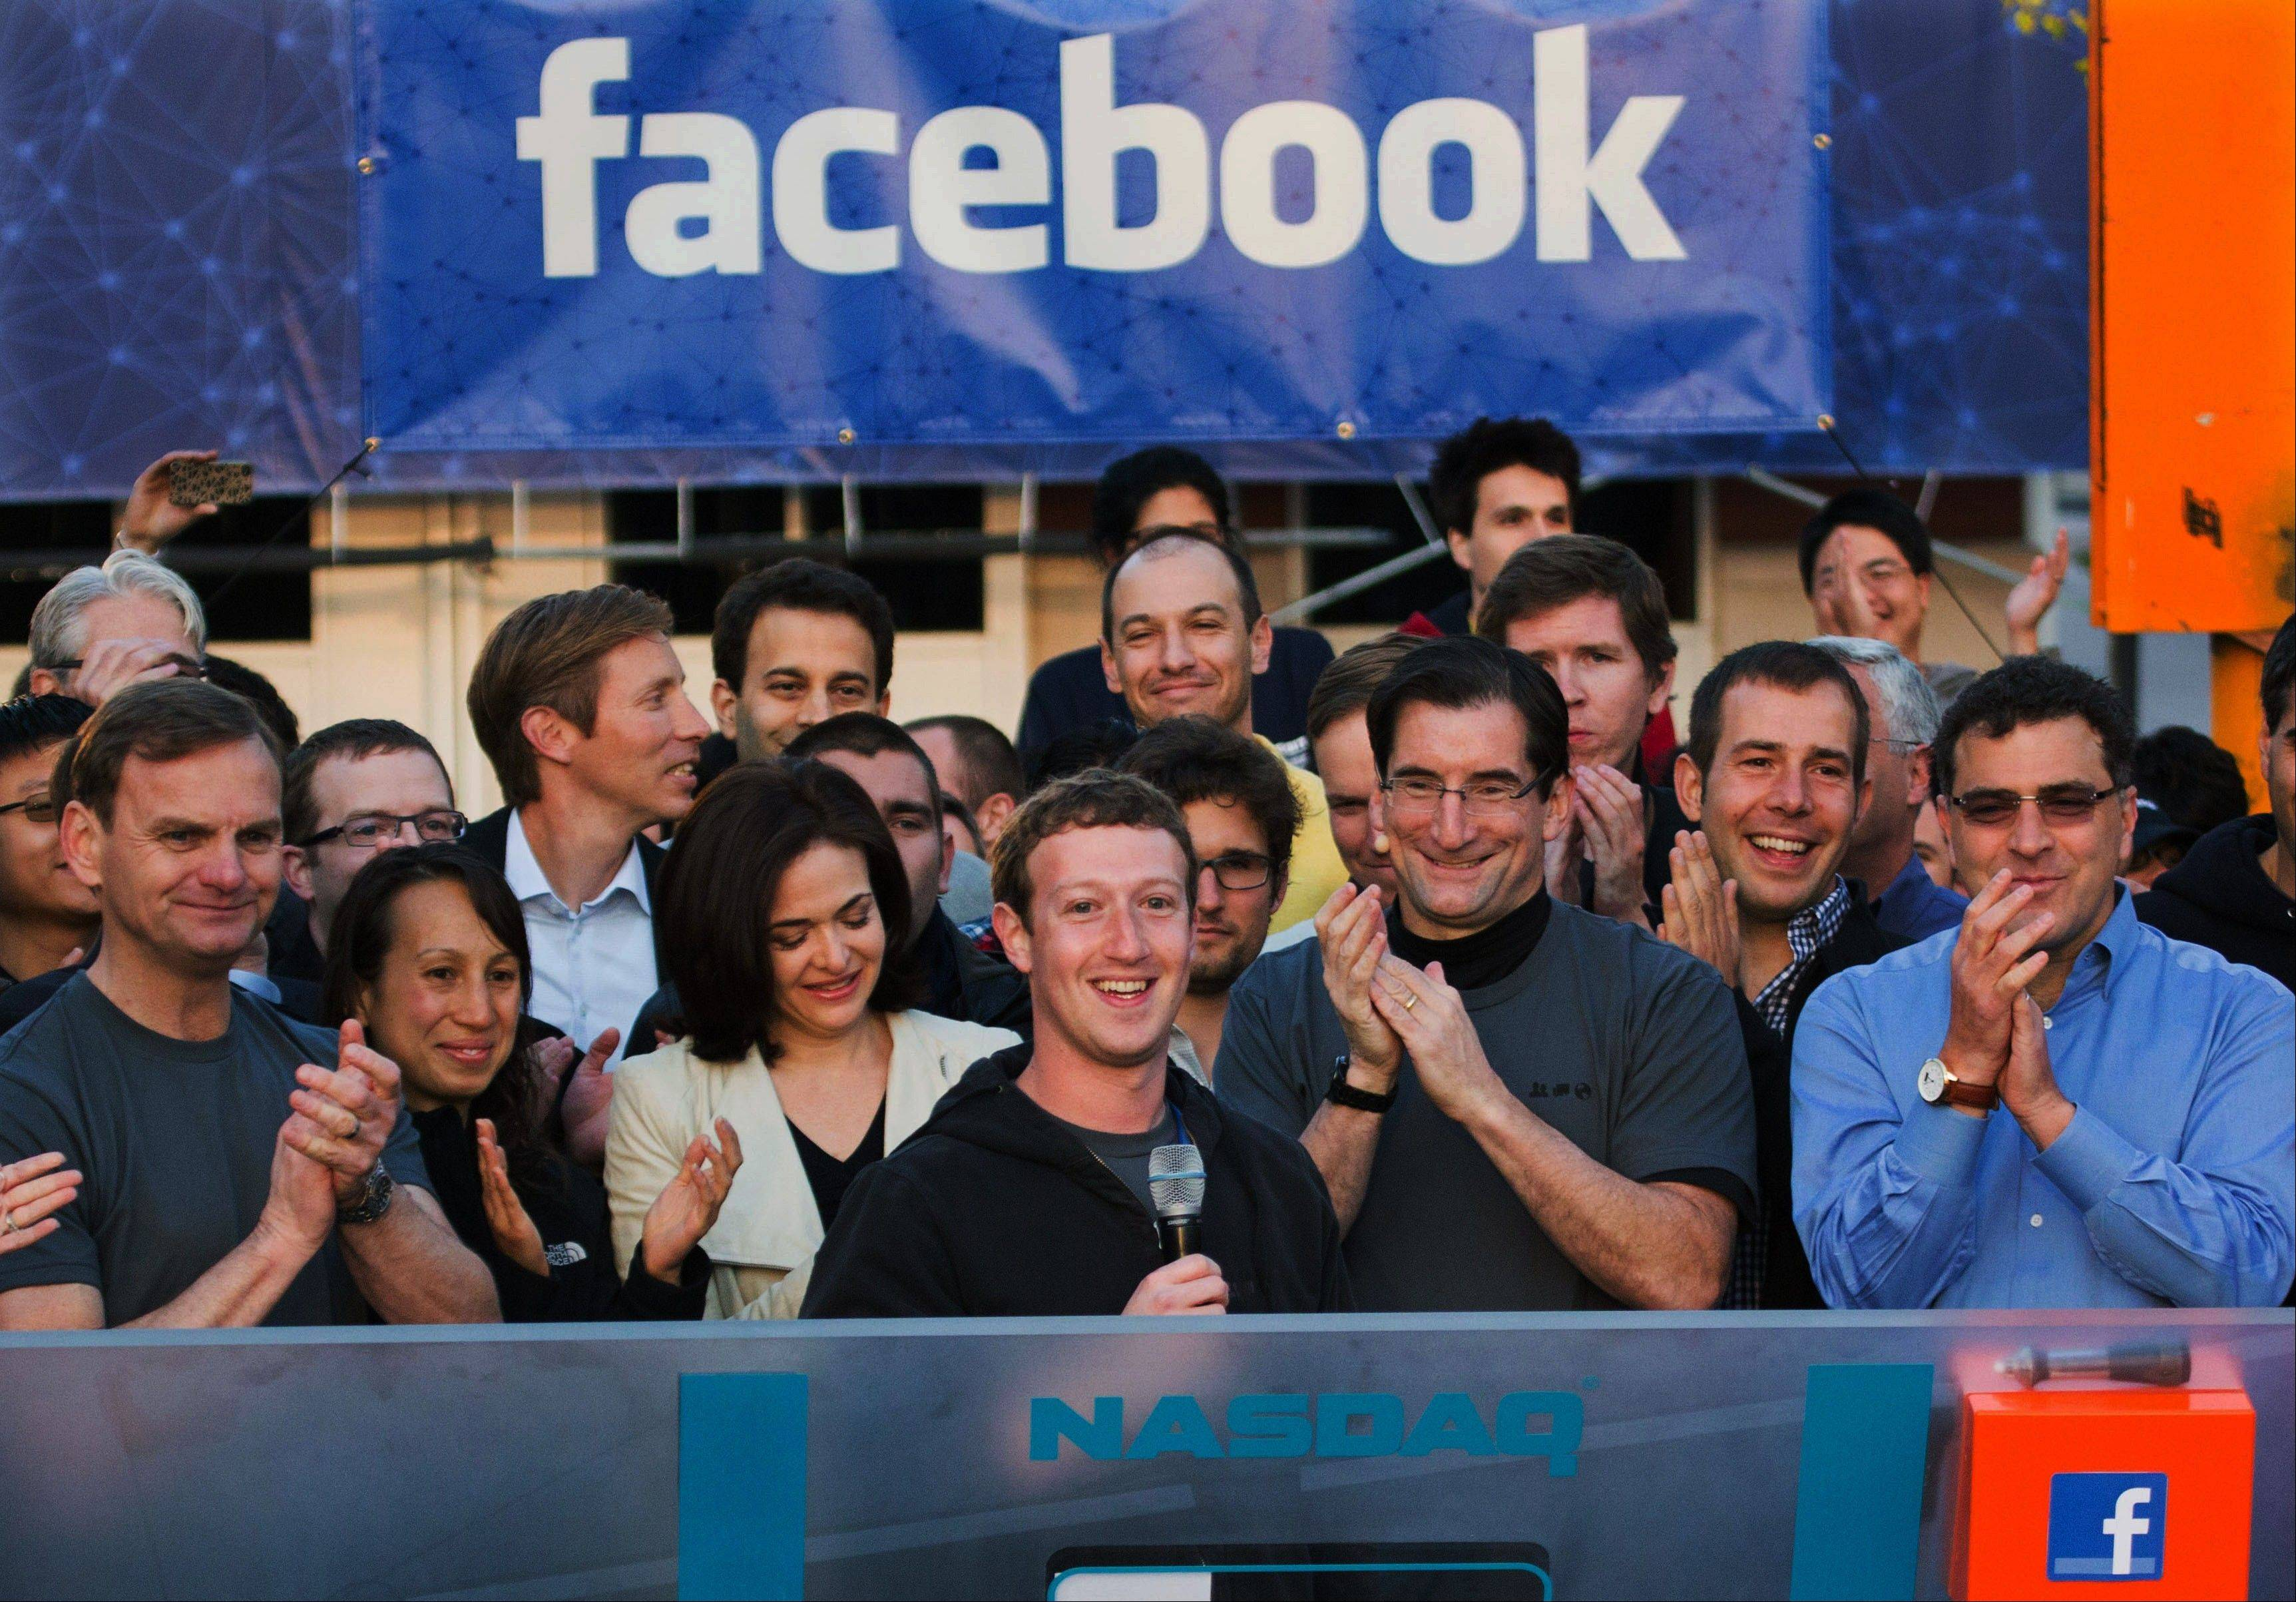 In this May 18, 2012, file photo, Facebook founder, Chairman and CEO Mark Zuckerberg, center, rings the Nasdaq opening bell from Facebook headquarters in Menlo Park, Calif. Facebook's stock finally passed its IPO price of $38 before the market opened Wednesday.